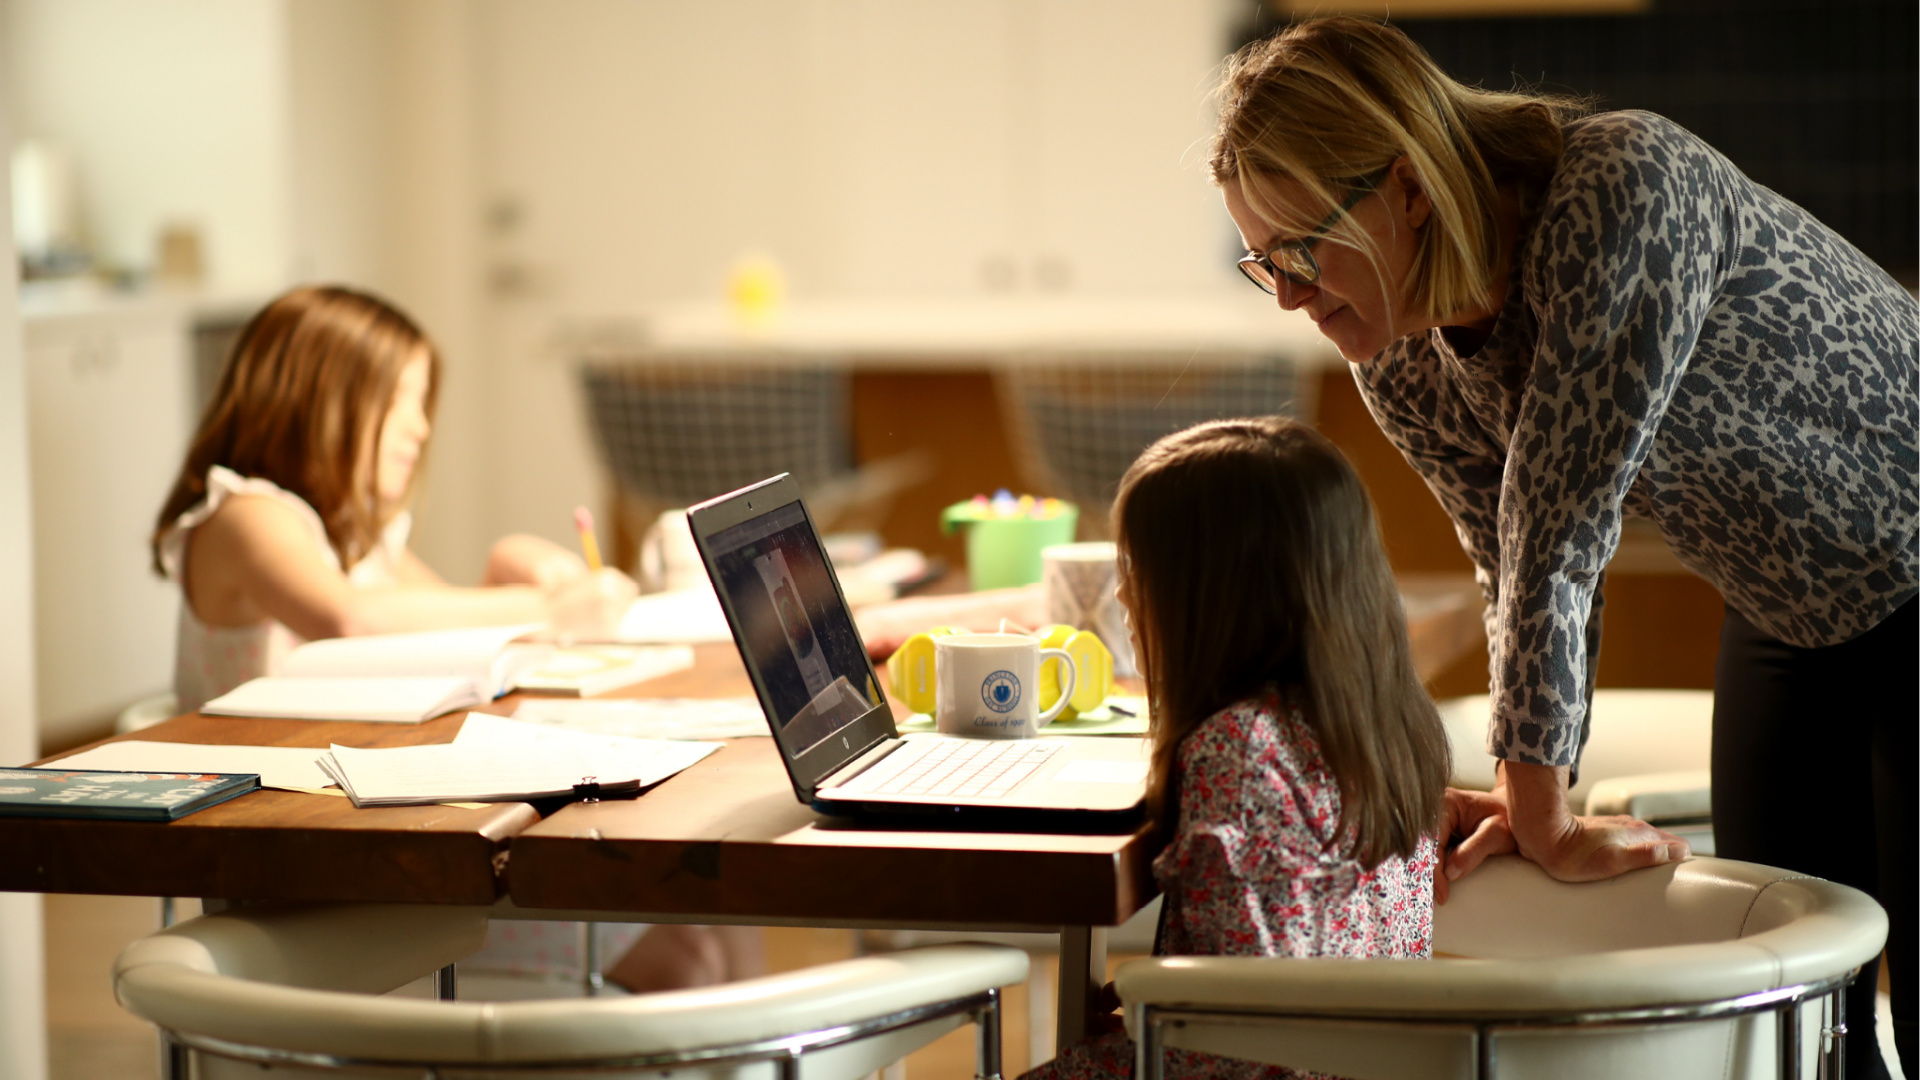 Daisley Kramer helps her kindergarten daughter, Meg, with schoolwork at home on March 18, 2020 in San Anselmo, California. (Ezra Shaw/Getty Images)